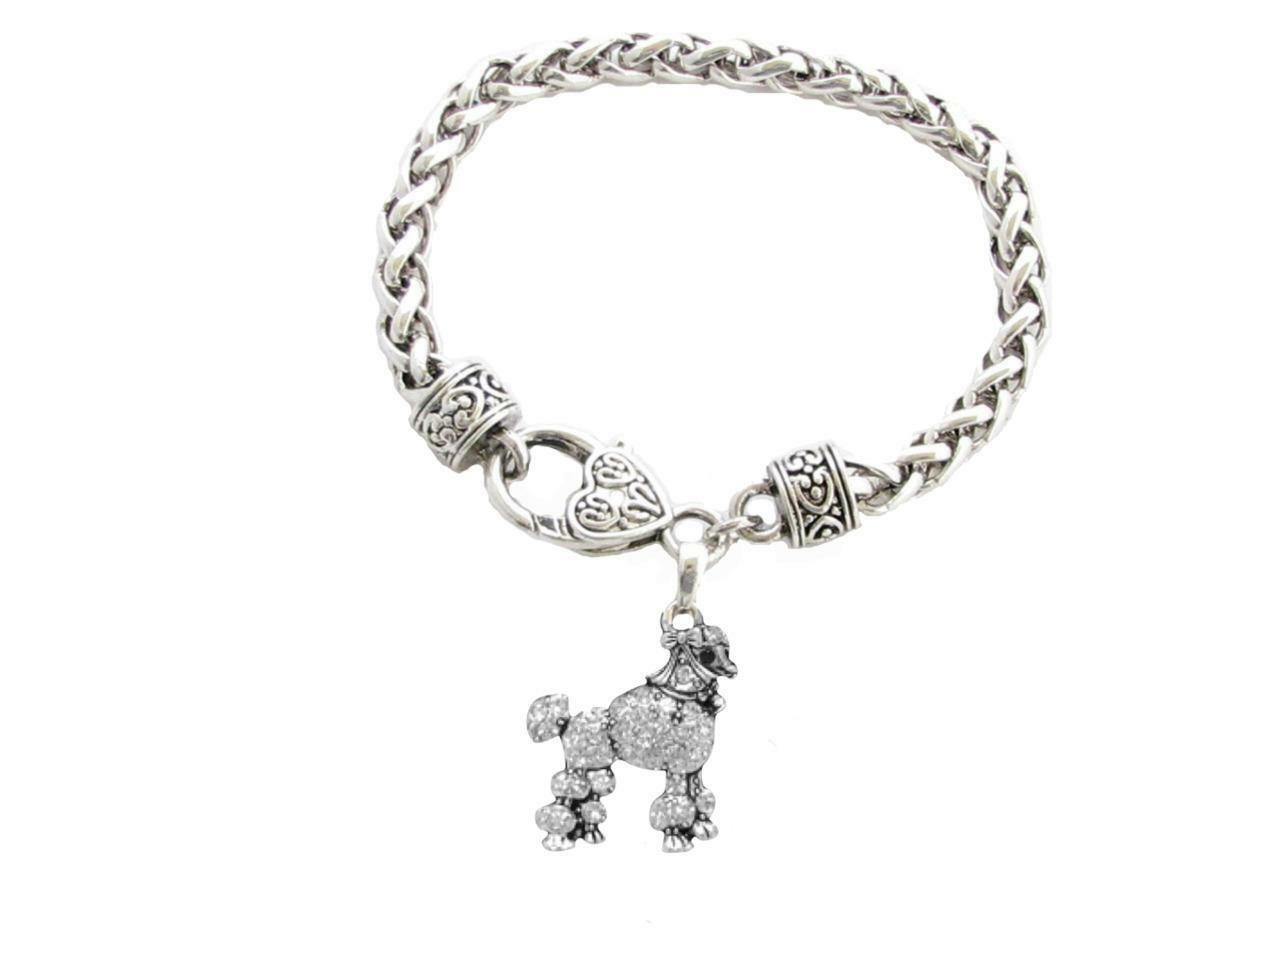 Primary image for Poodle Dog Breed Silver Clear Crystal Charm Bracelet Jewelry Gift Toy